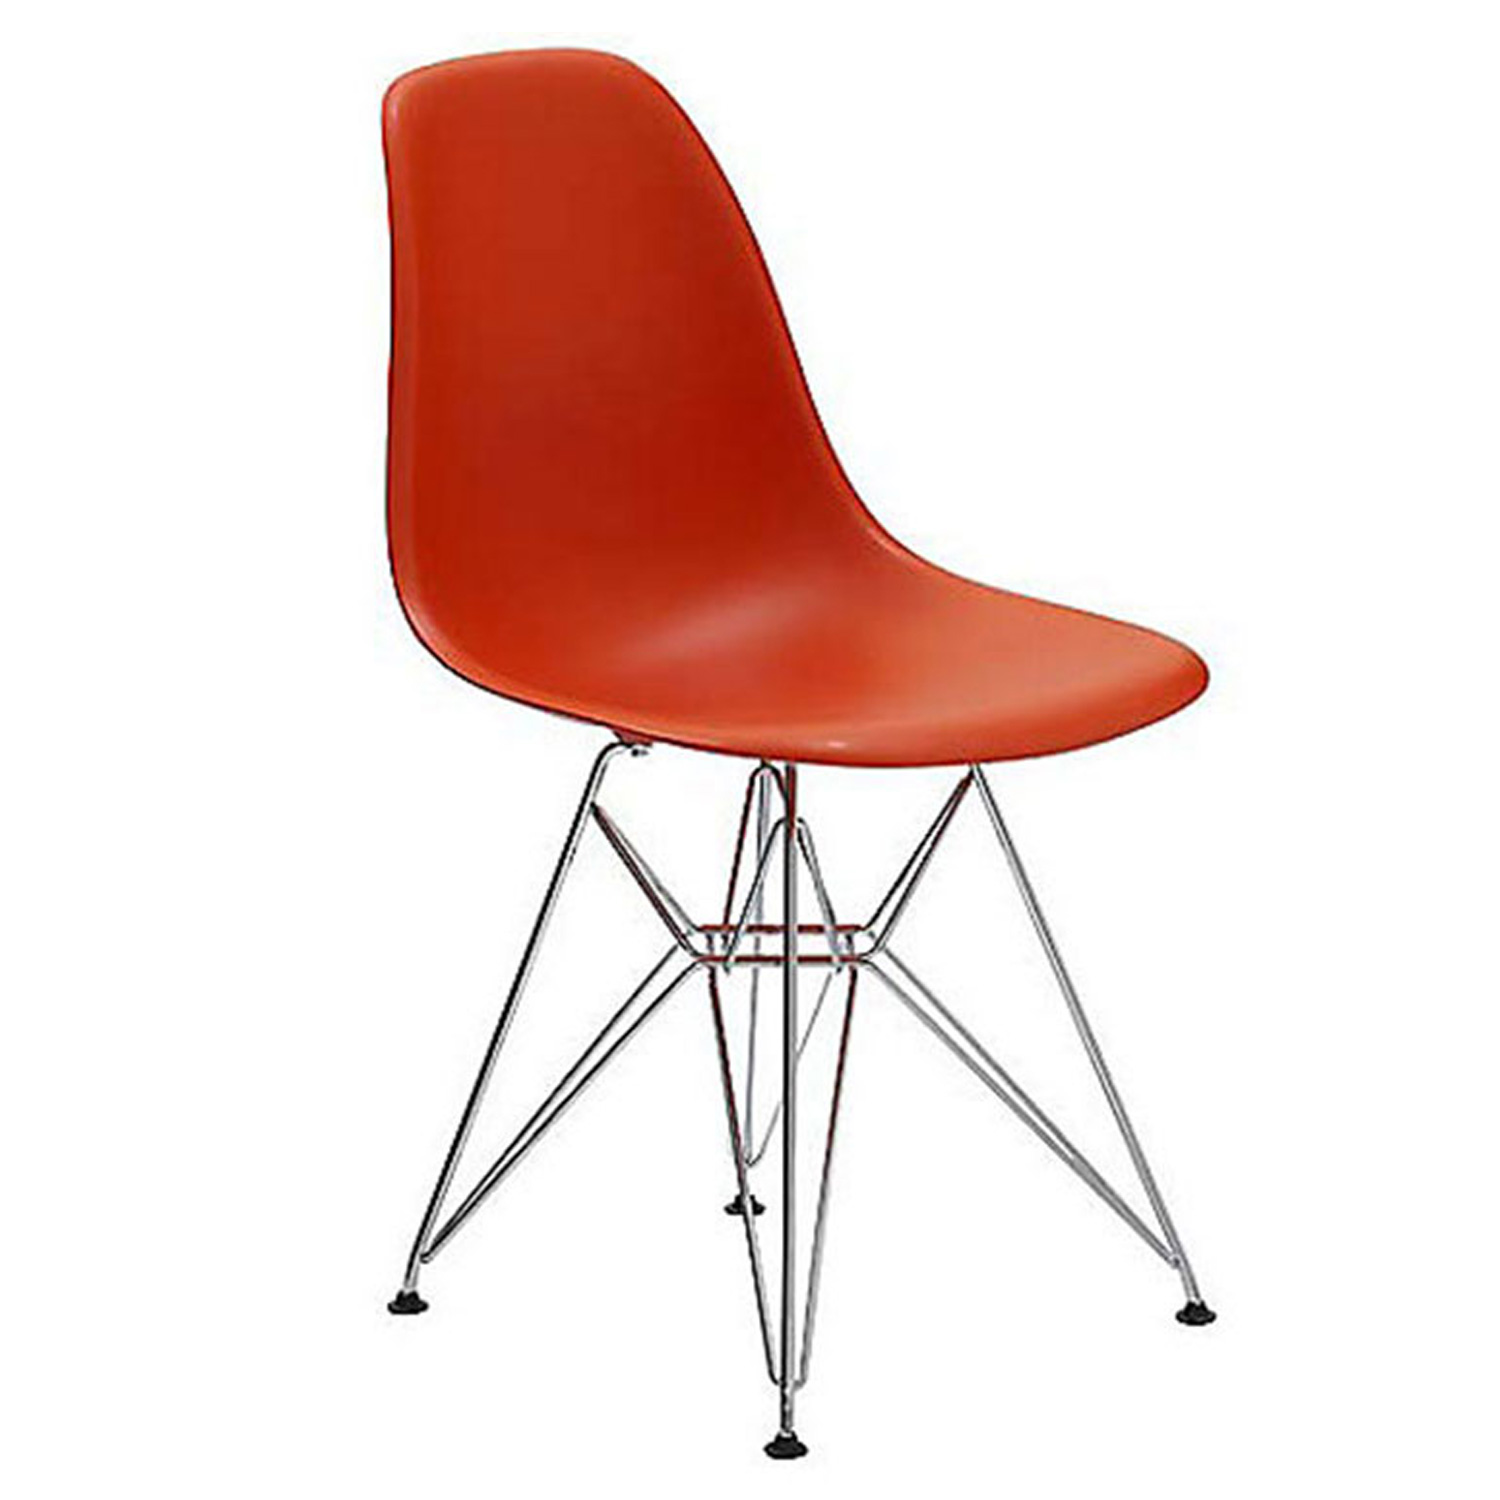 Eames Eiffel Replica Eames Eiffel Kids Chair | Clever Little Monkey